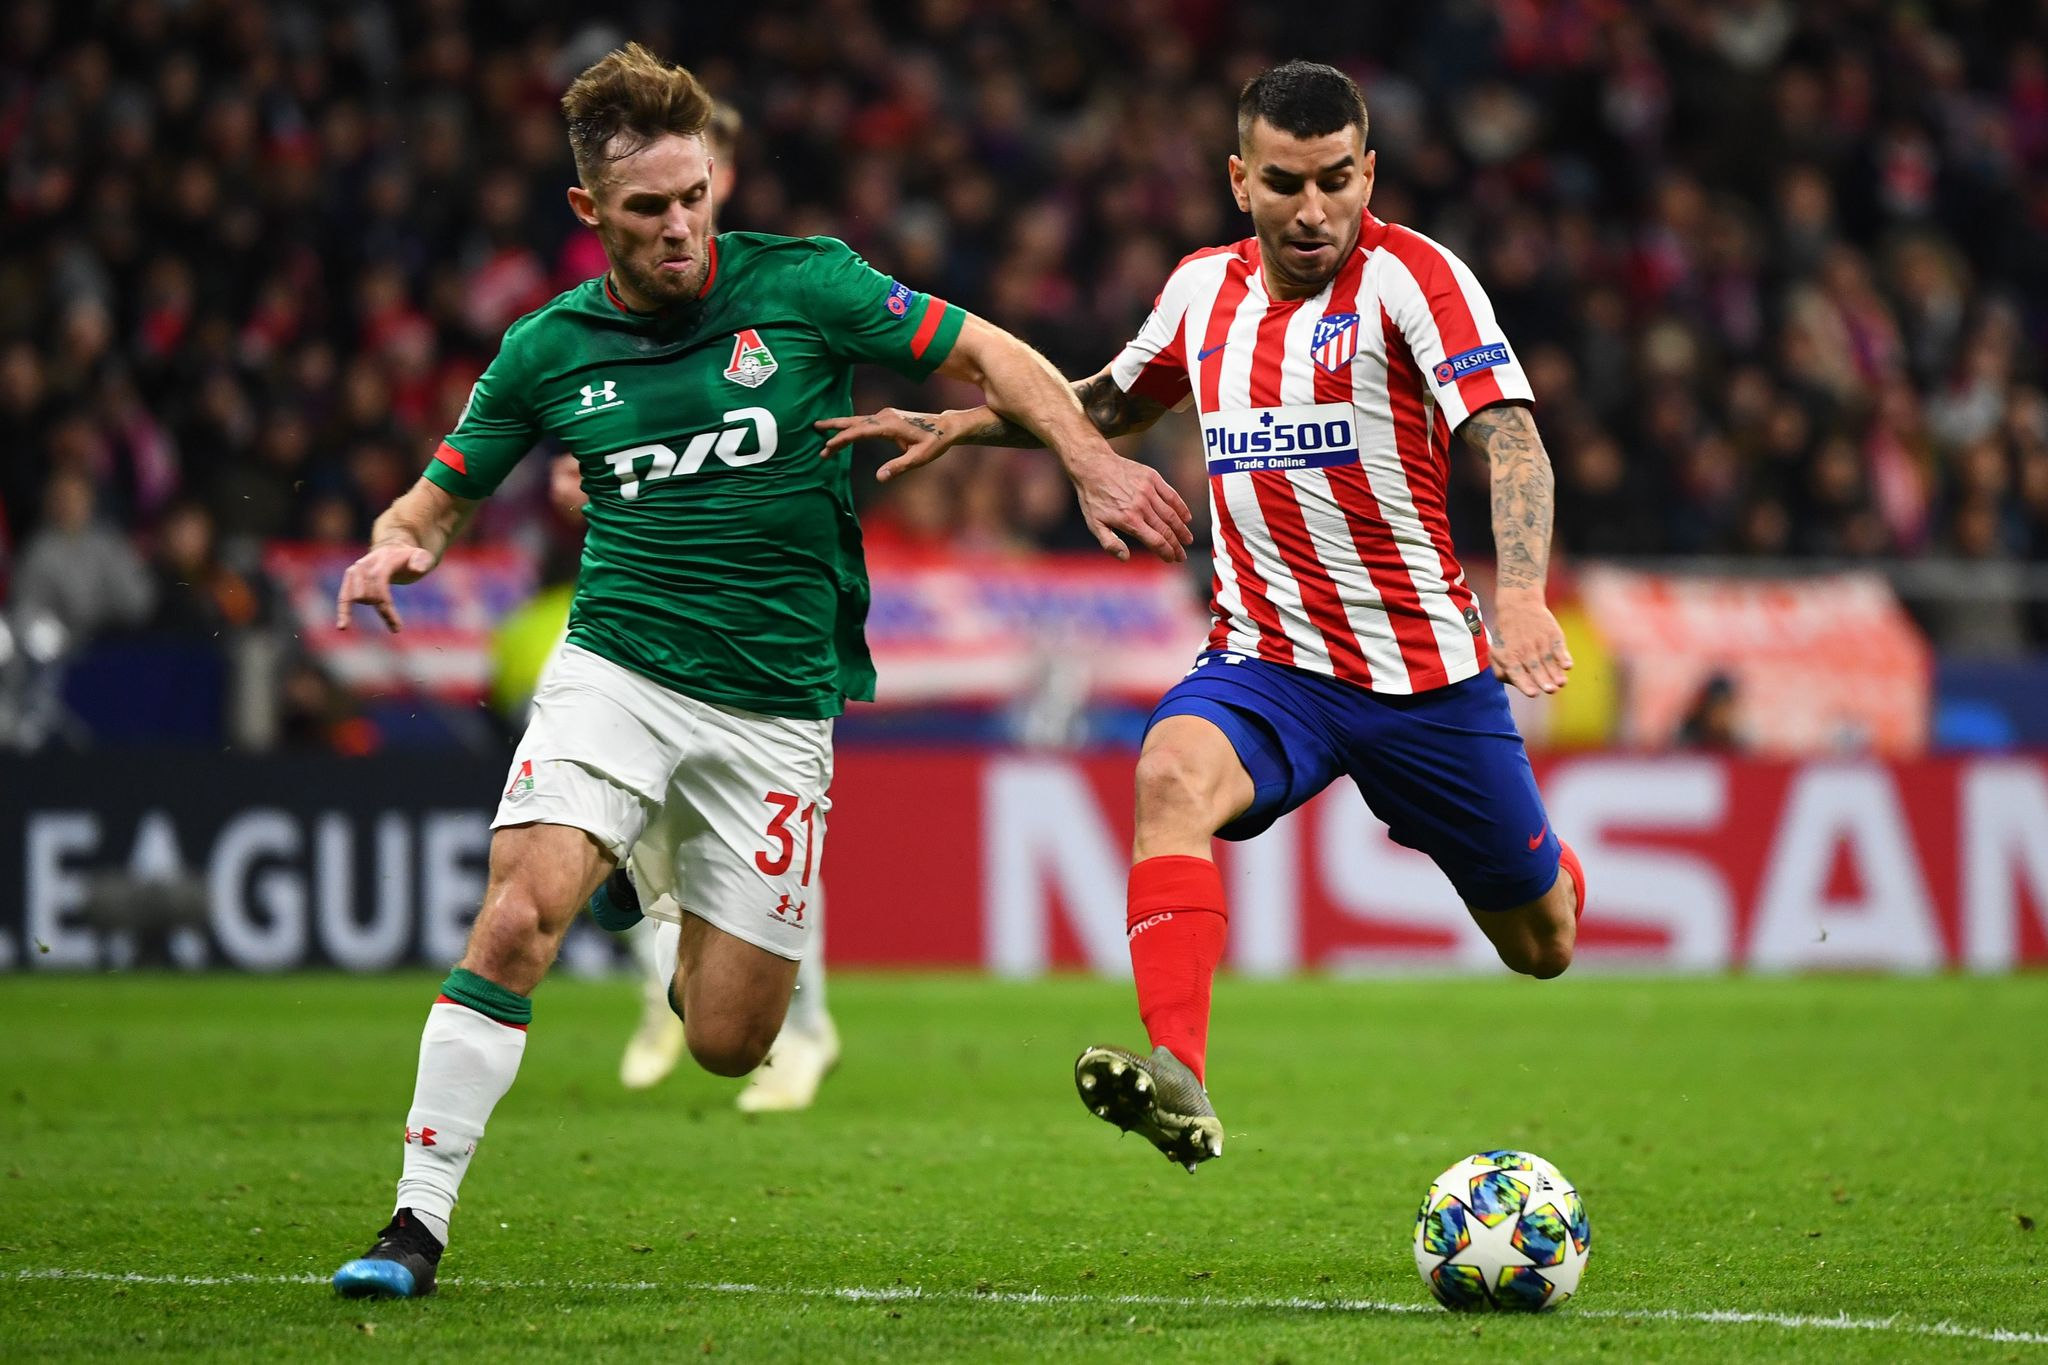 Lokomotiv Moscows Polish midfielder Maciej Rybus (L) vies with Atletico Madrids Argentine forward Angel <HIT>Correa</HIT> during the UEFA Champions League football match between Club Atletico de Madrid and Lokomotiv Moscow at the Wanda Metropolitano stadium in Madrid on December 11, 2019. (Photo by GABRIEL BOUYS / AFP)